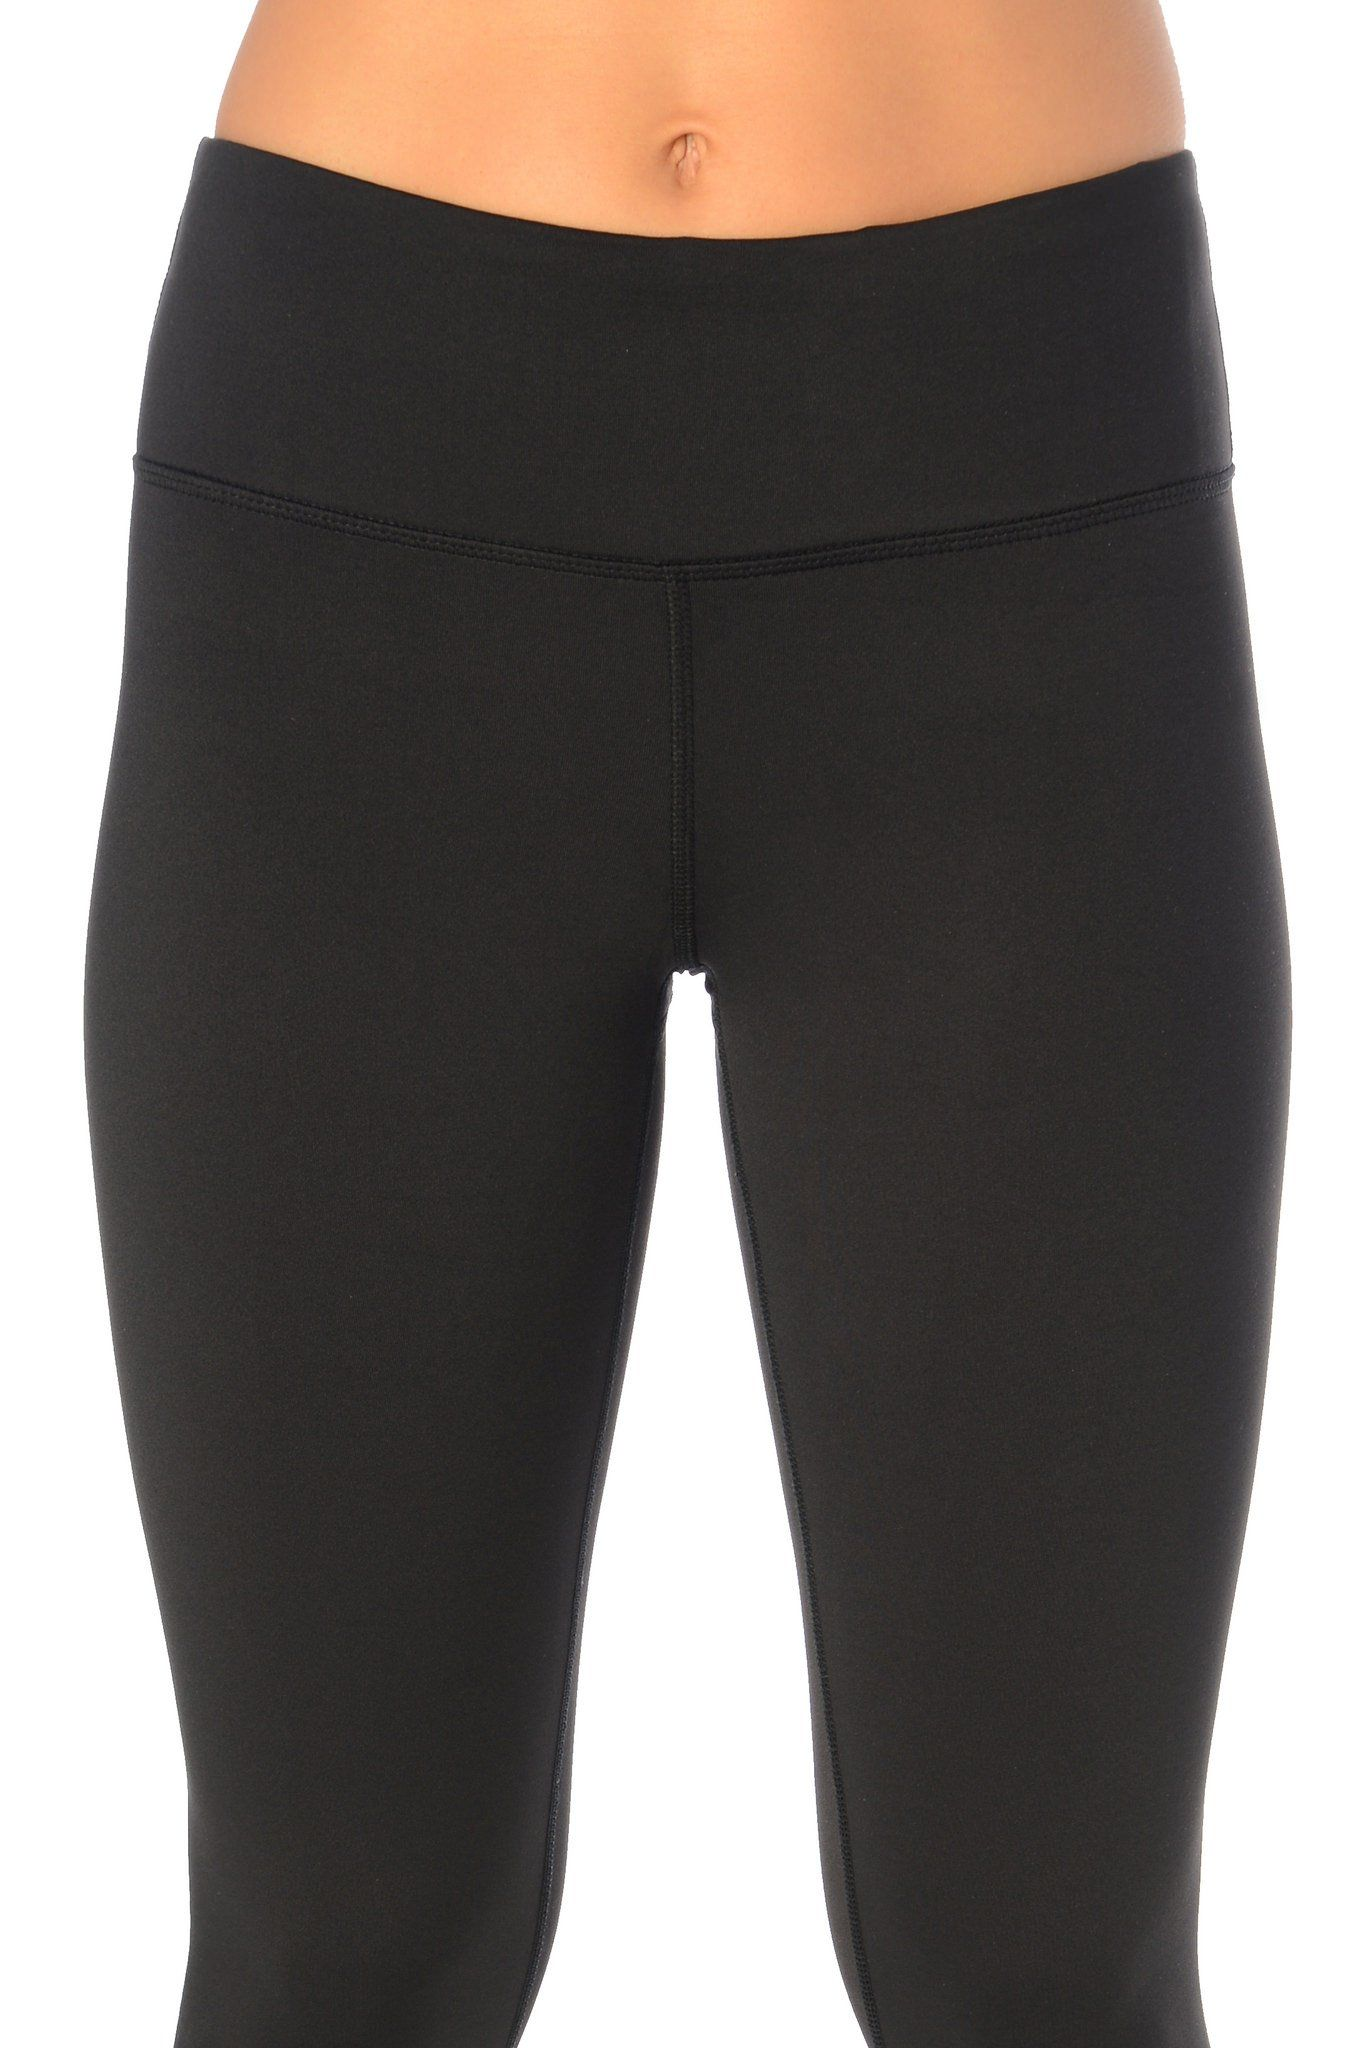 a8e21e0e6329a 90 Degree By Reflex Fleece Lined Leggings - Yoga Pants - Black Small ...